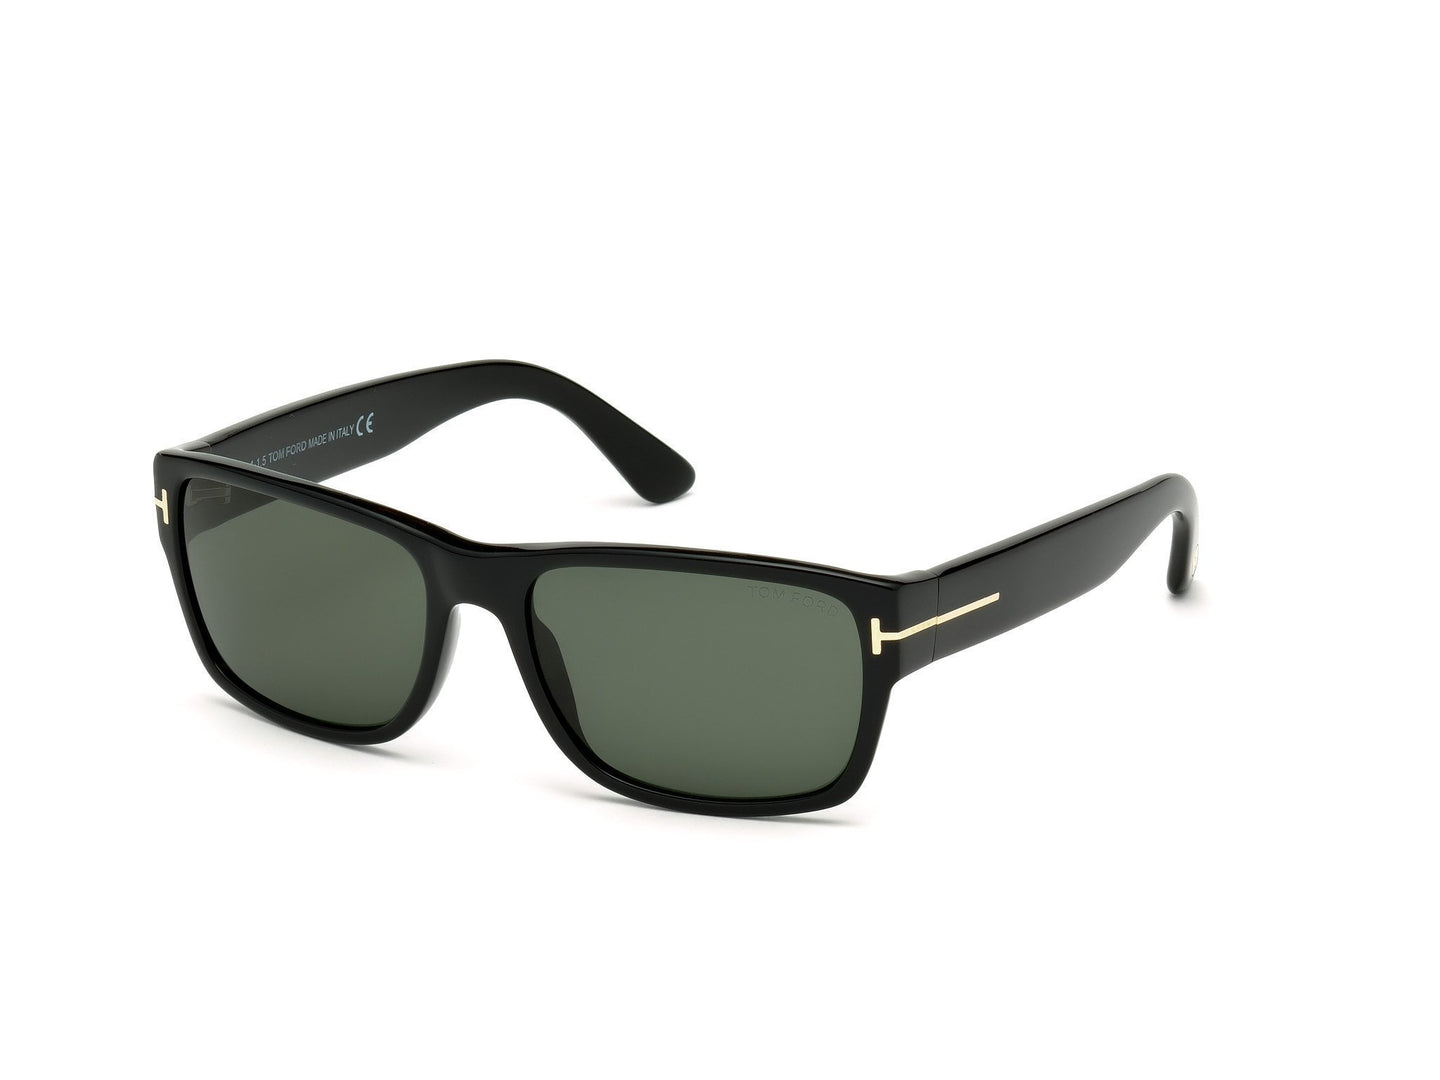 Tom Ford Sunglass-FT0445